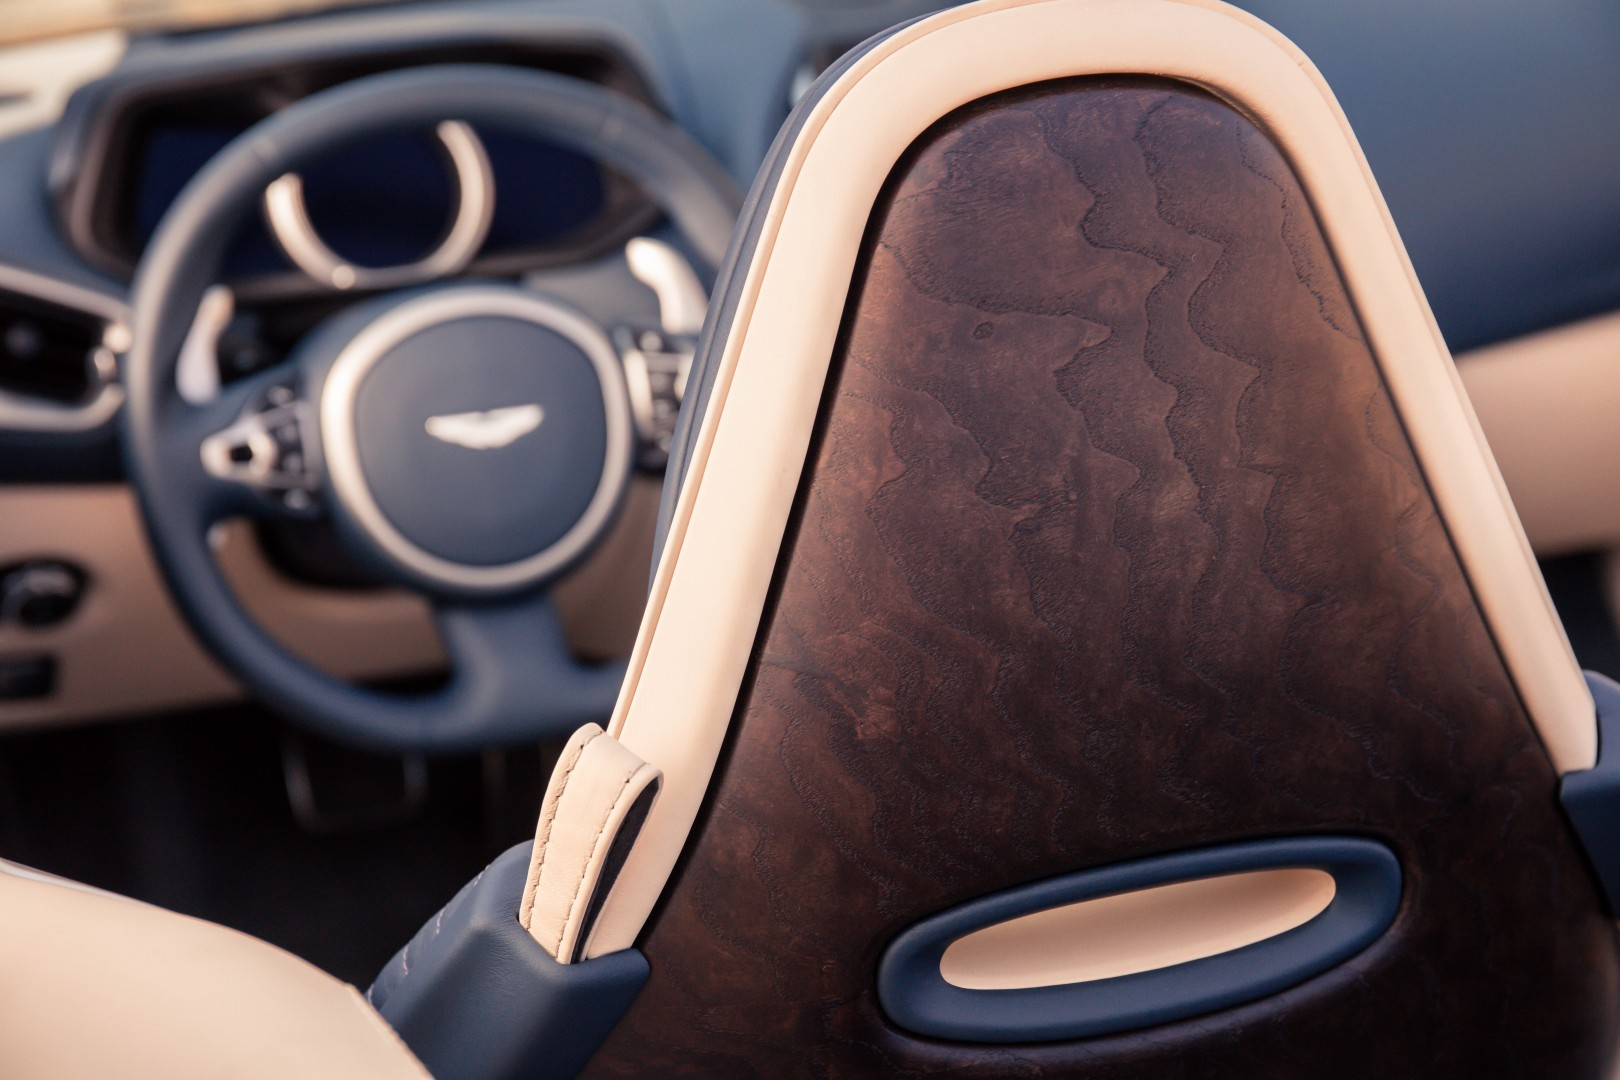 Aston Martin DB11 Volante Interior from rear seat